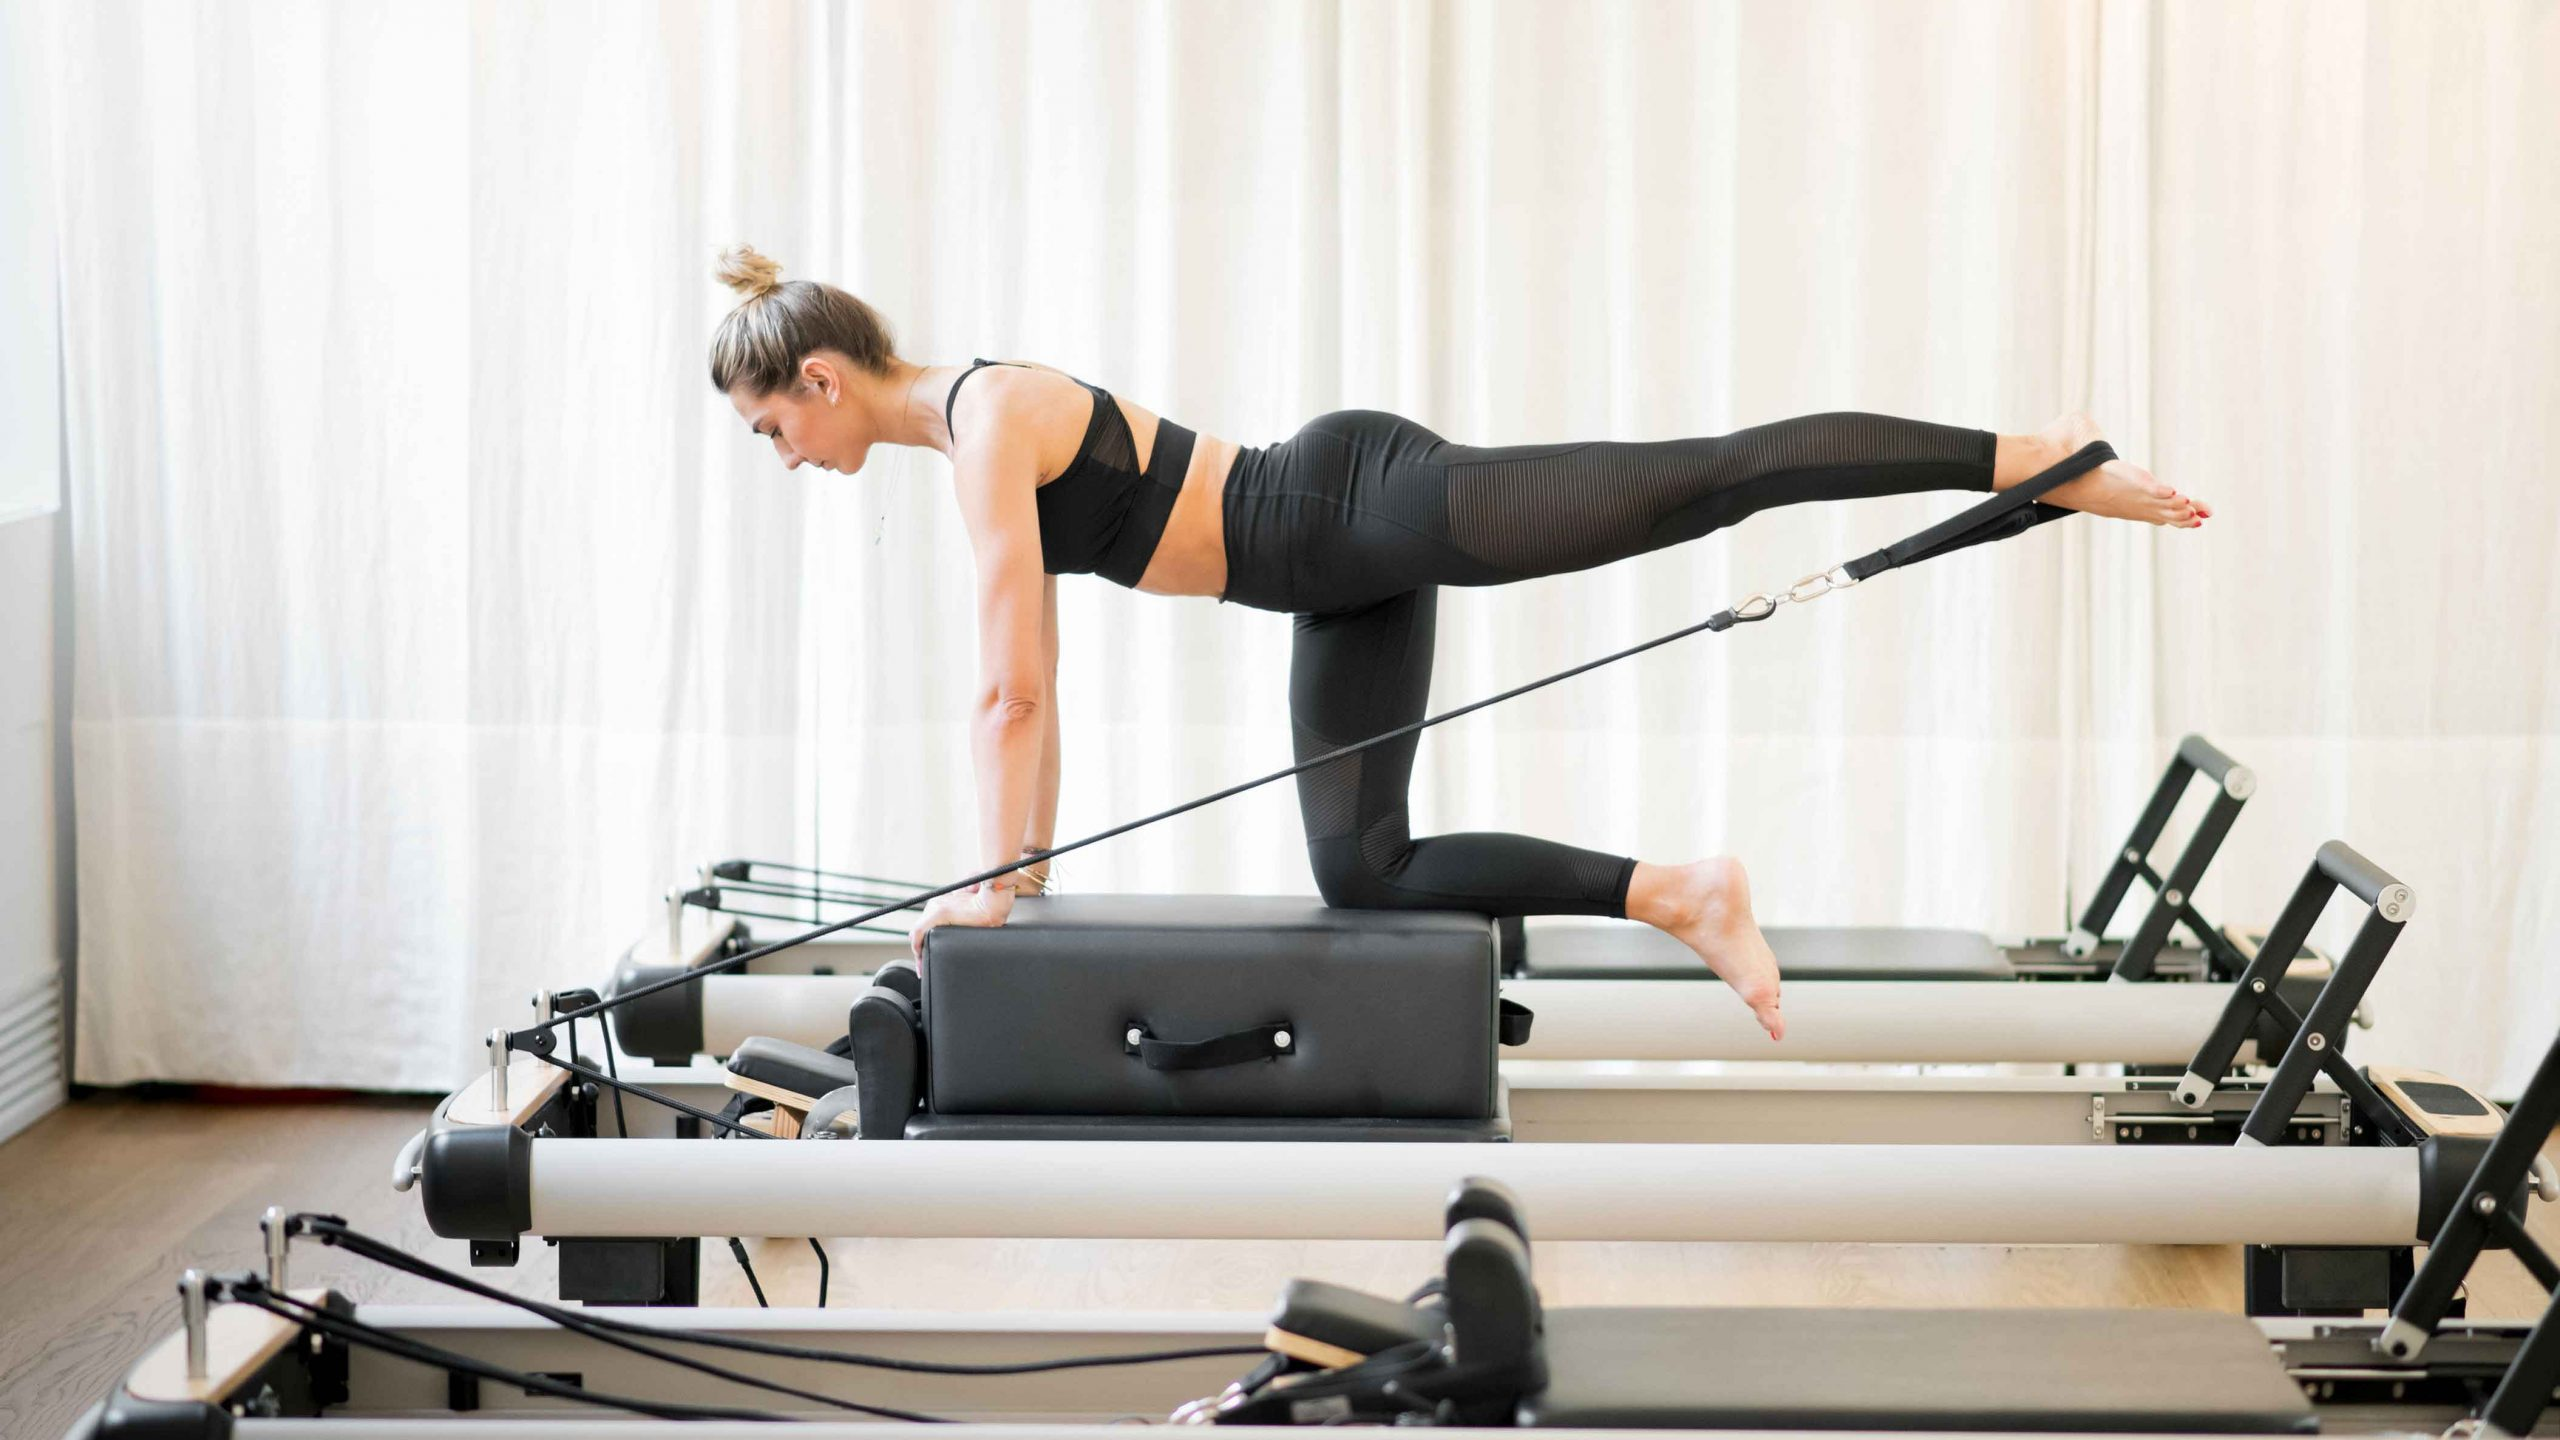 Pilates reformer pictures 3